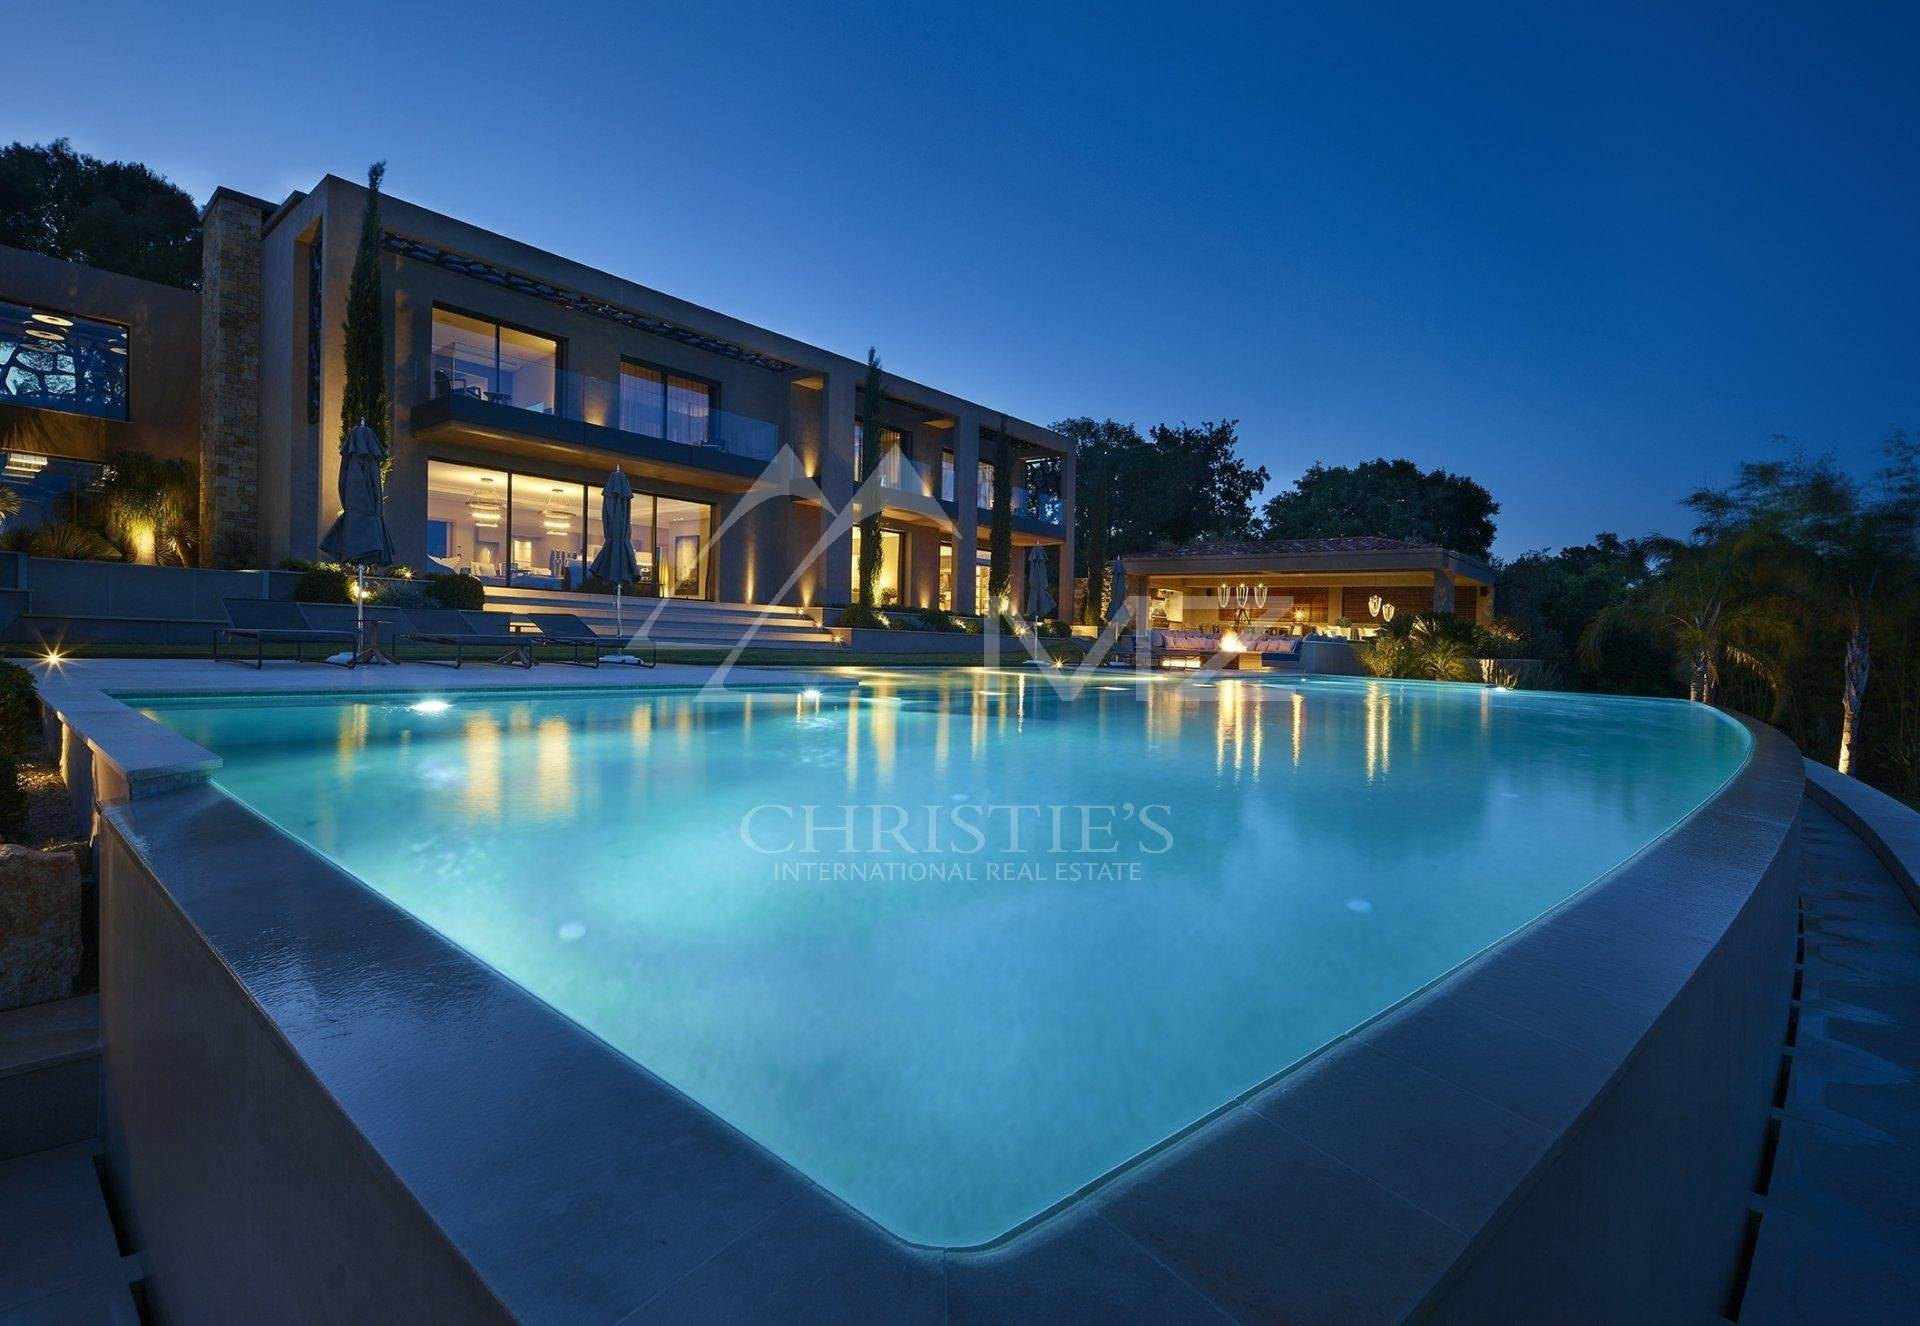 Villa/Townhouse for Sale at Mougins - Stunning property Mougins, Alpes-Maritimes,06250 France